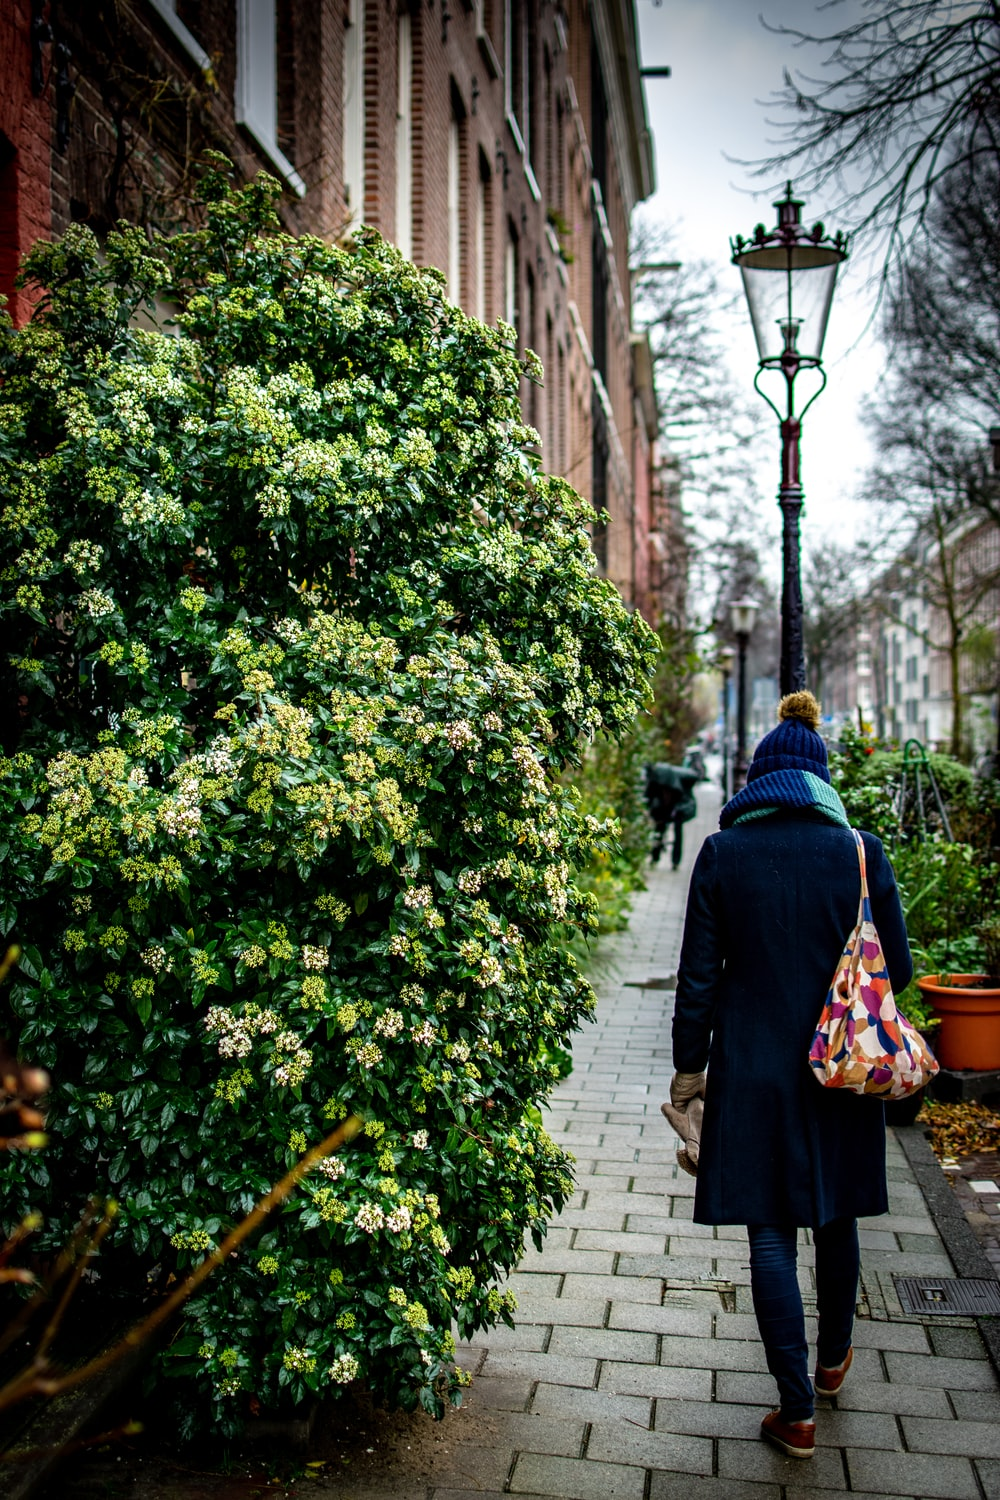 person walking on pathway beside green-leafed plants